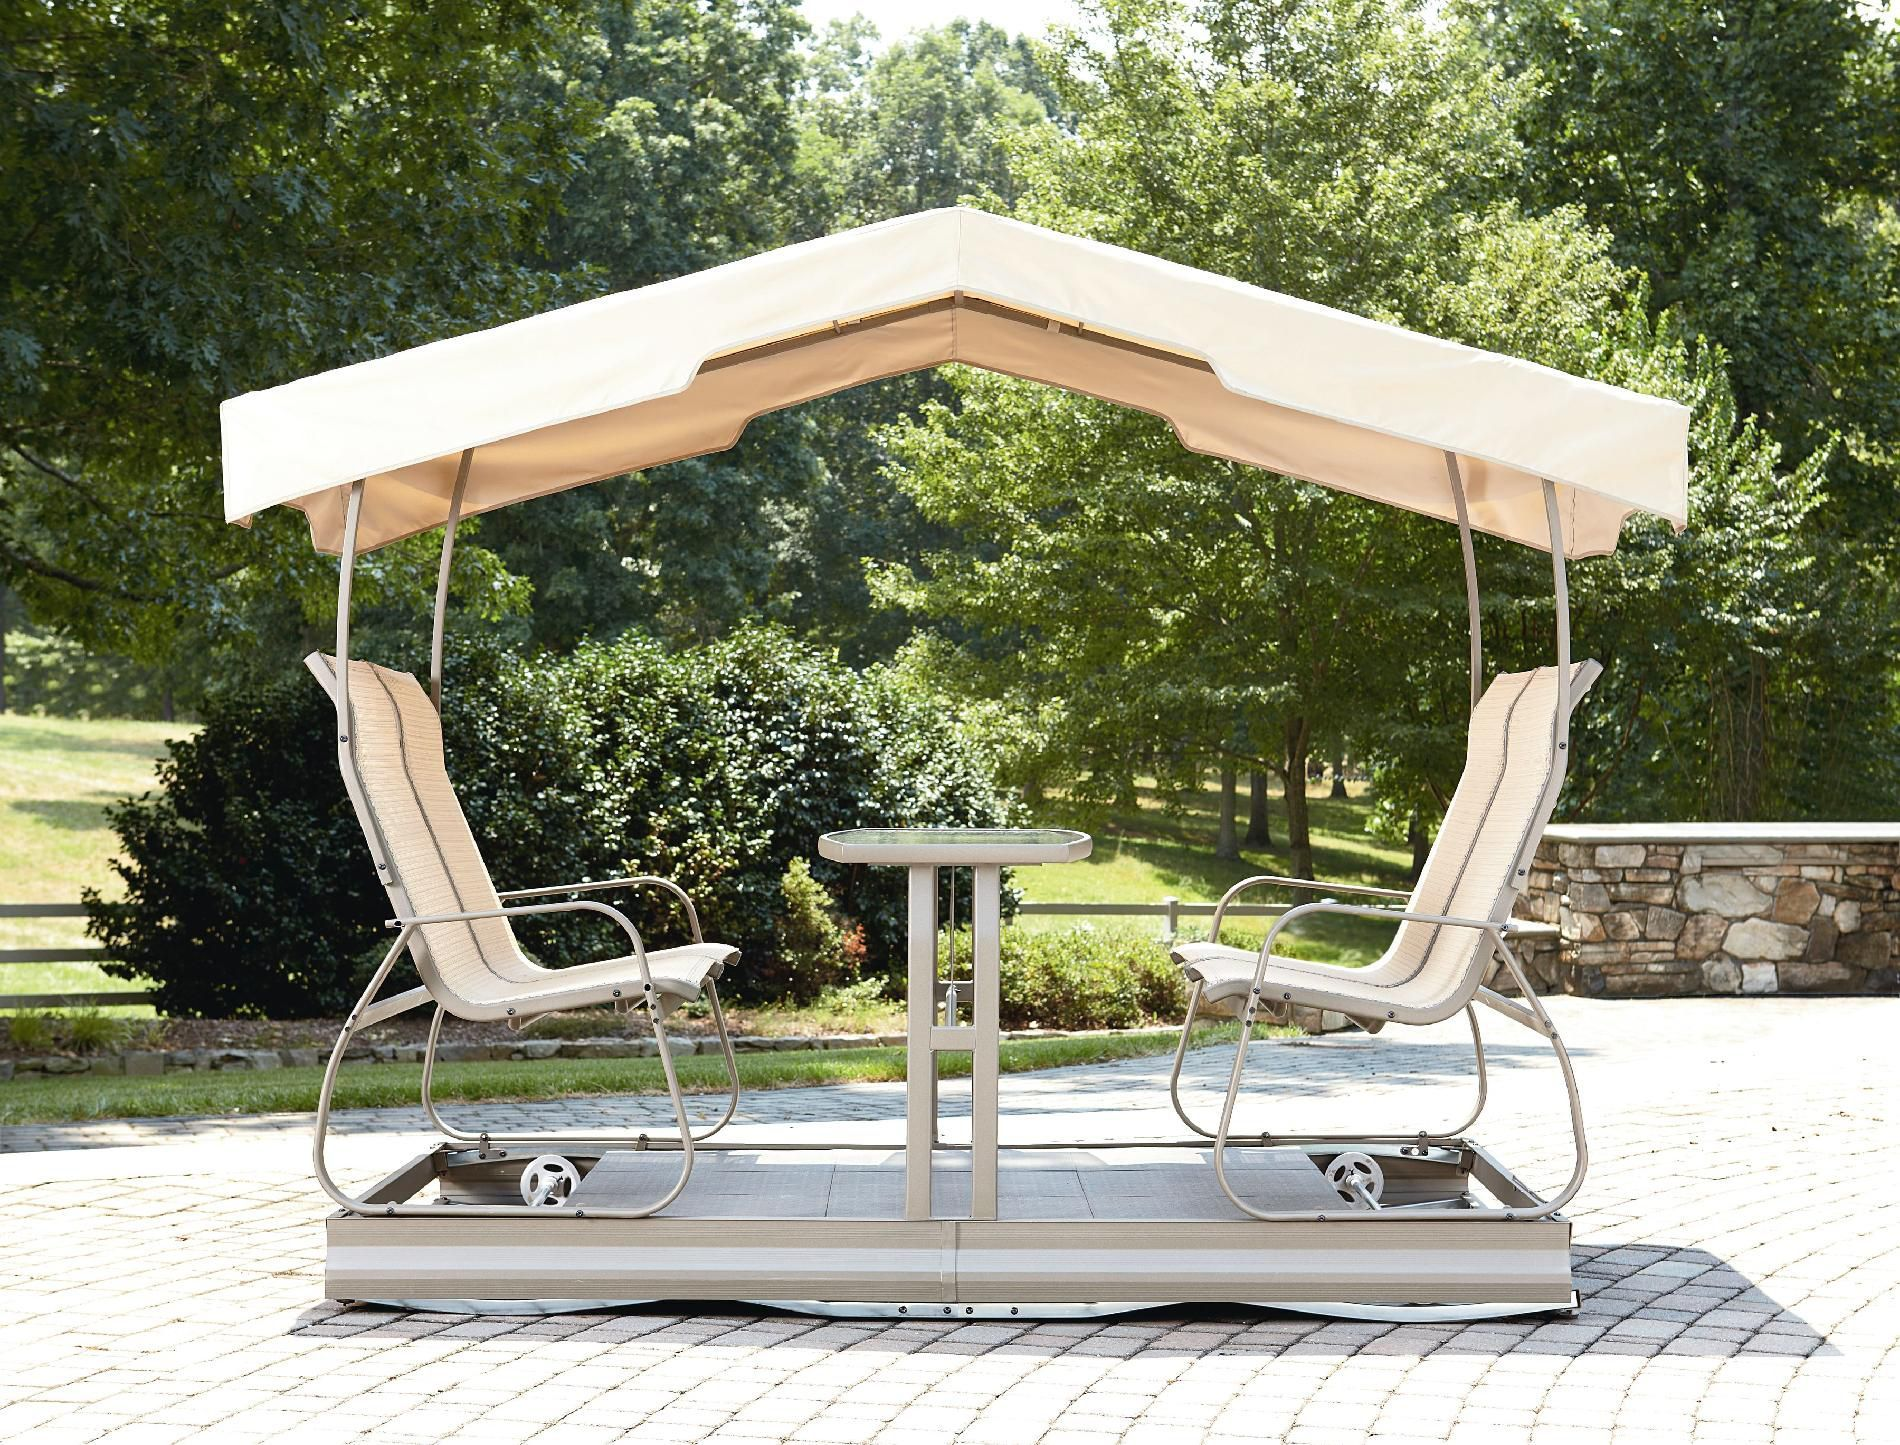 Garden Glider Plans Grandview 4 Seat Glider The Grandview 4 Seat Glider Is The Perfect